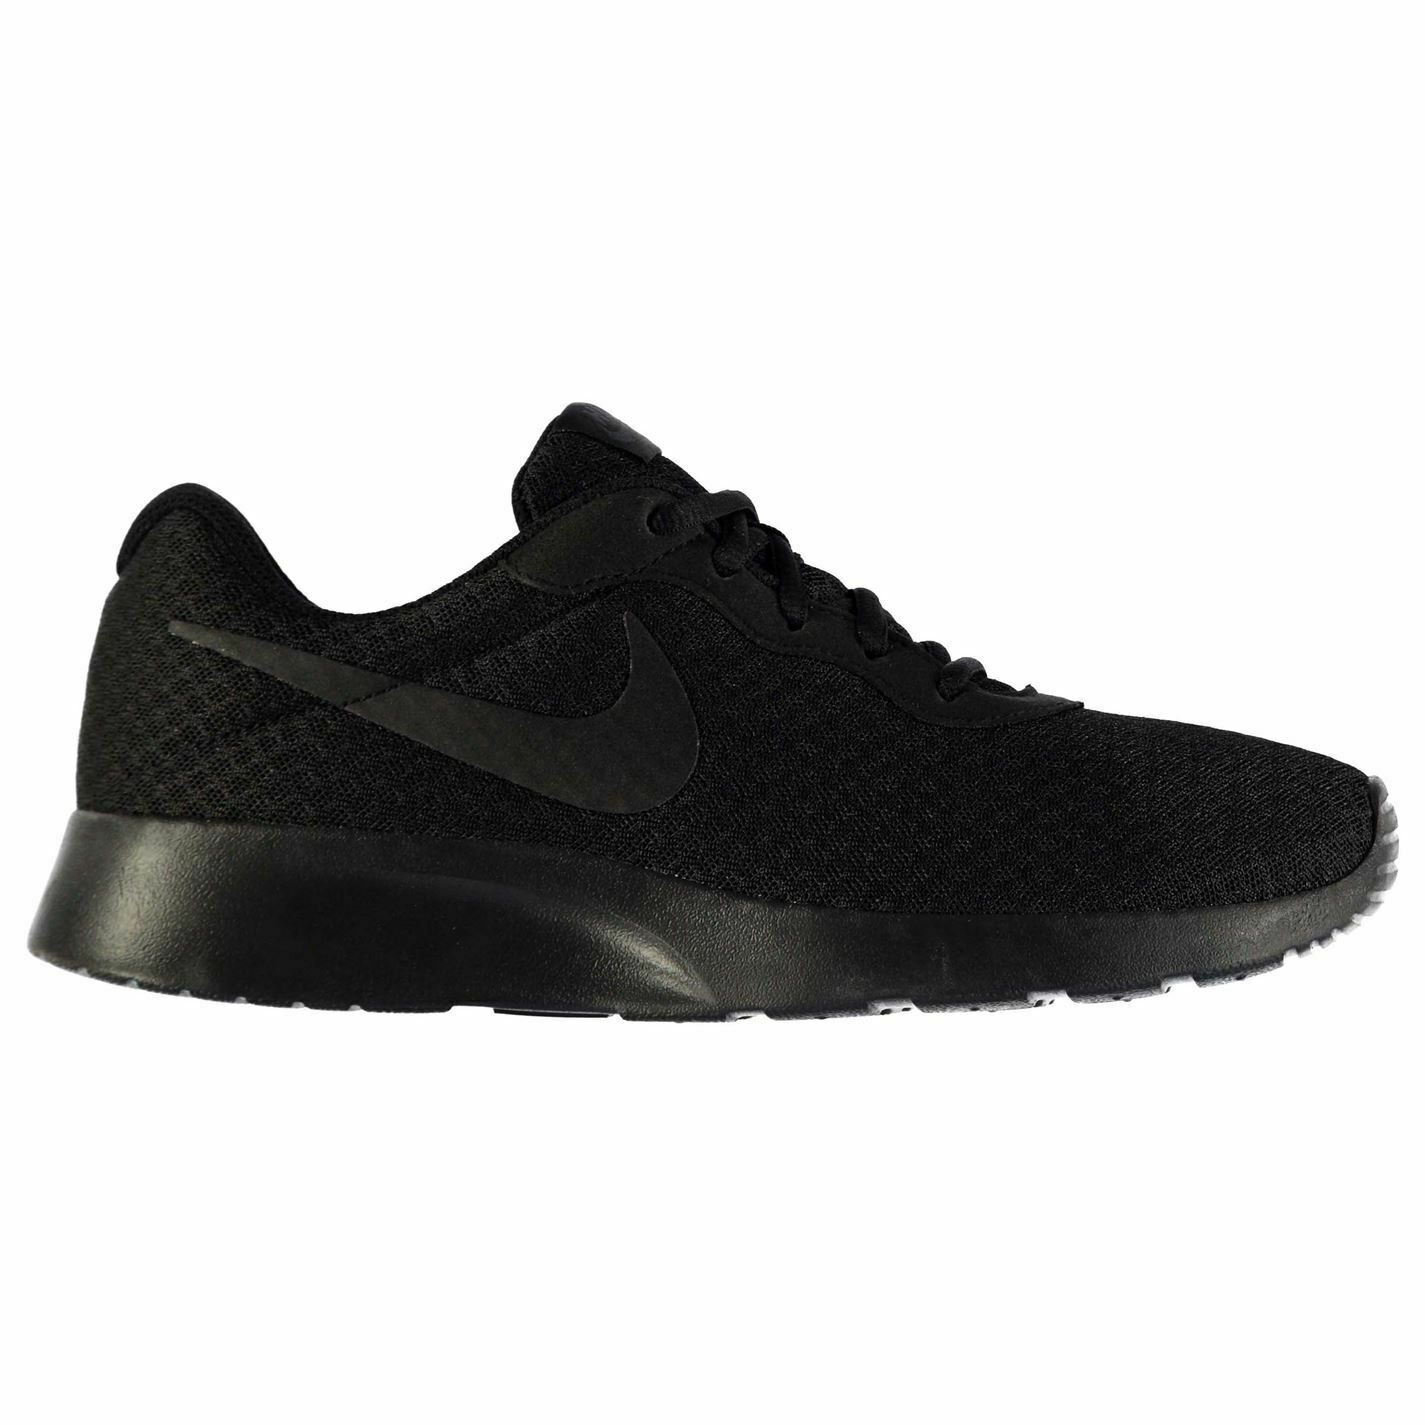 Nike Tanjun Trainers Mens Black Black Sports shoes Sneakers Footwear